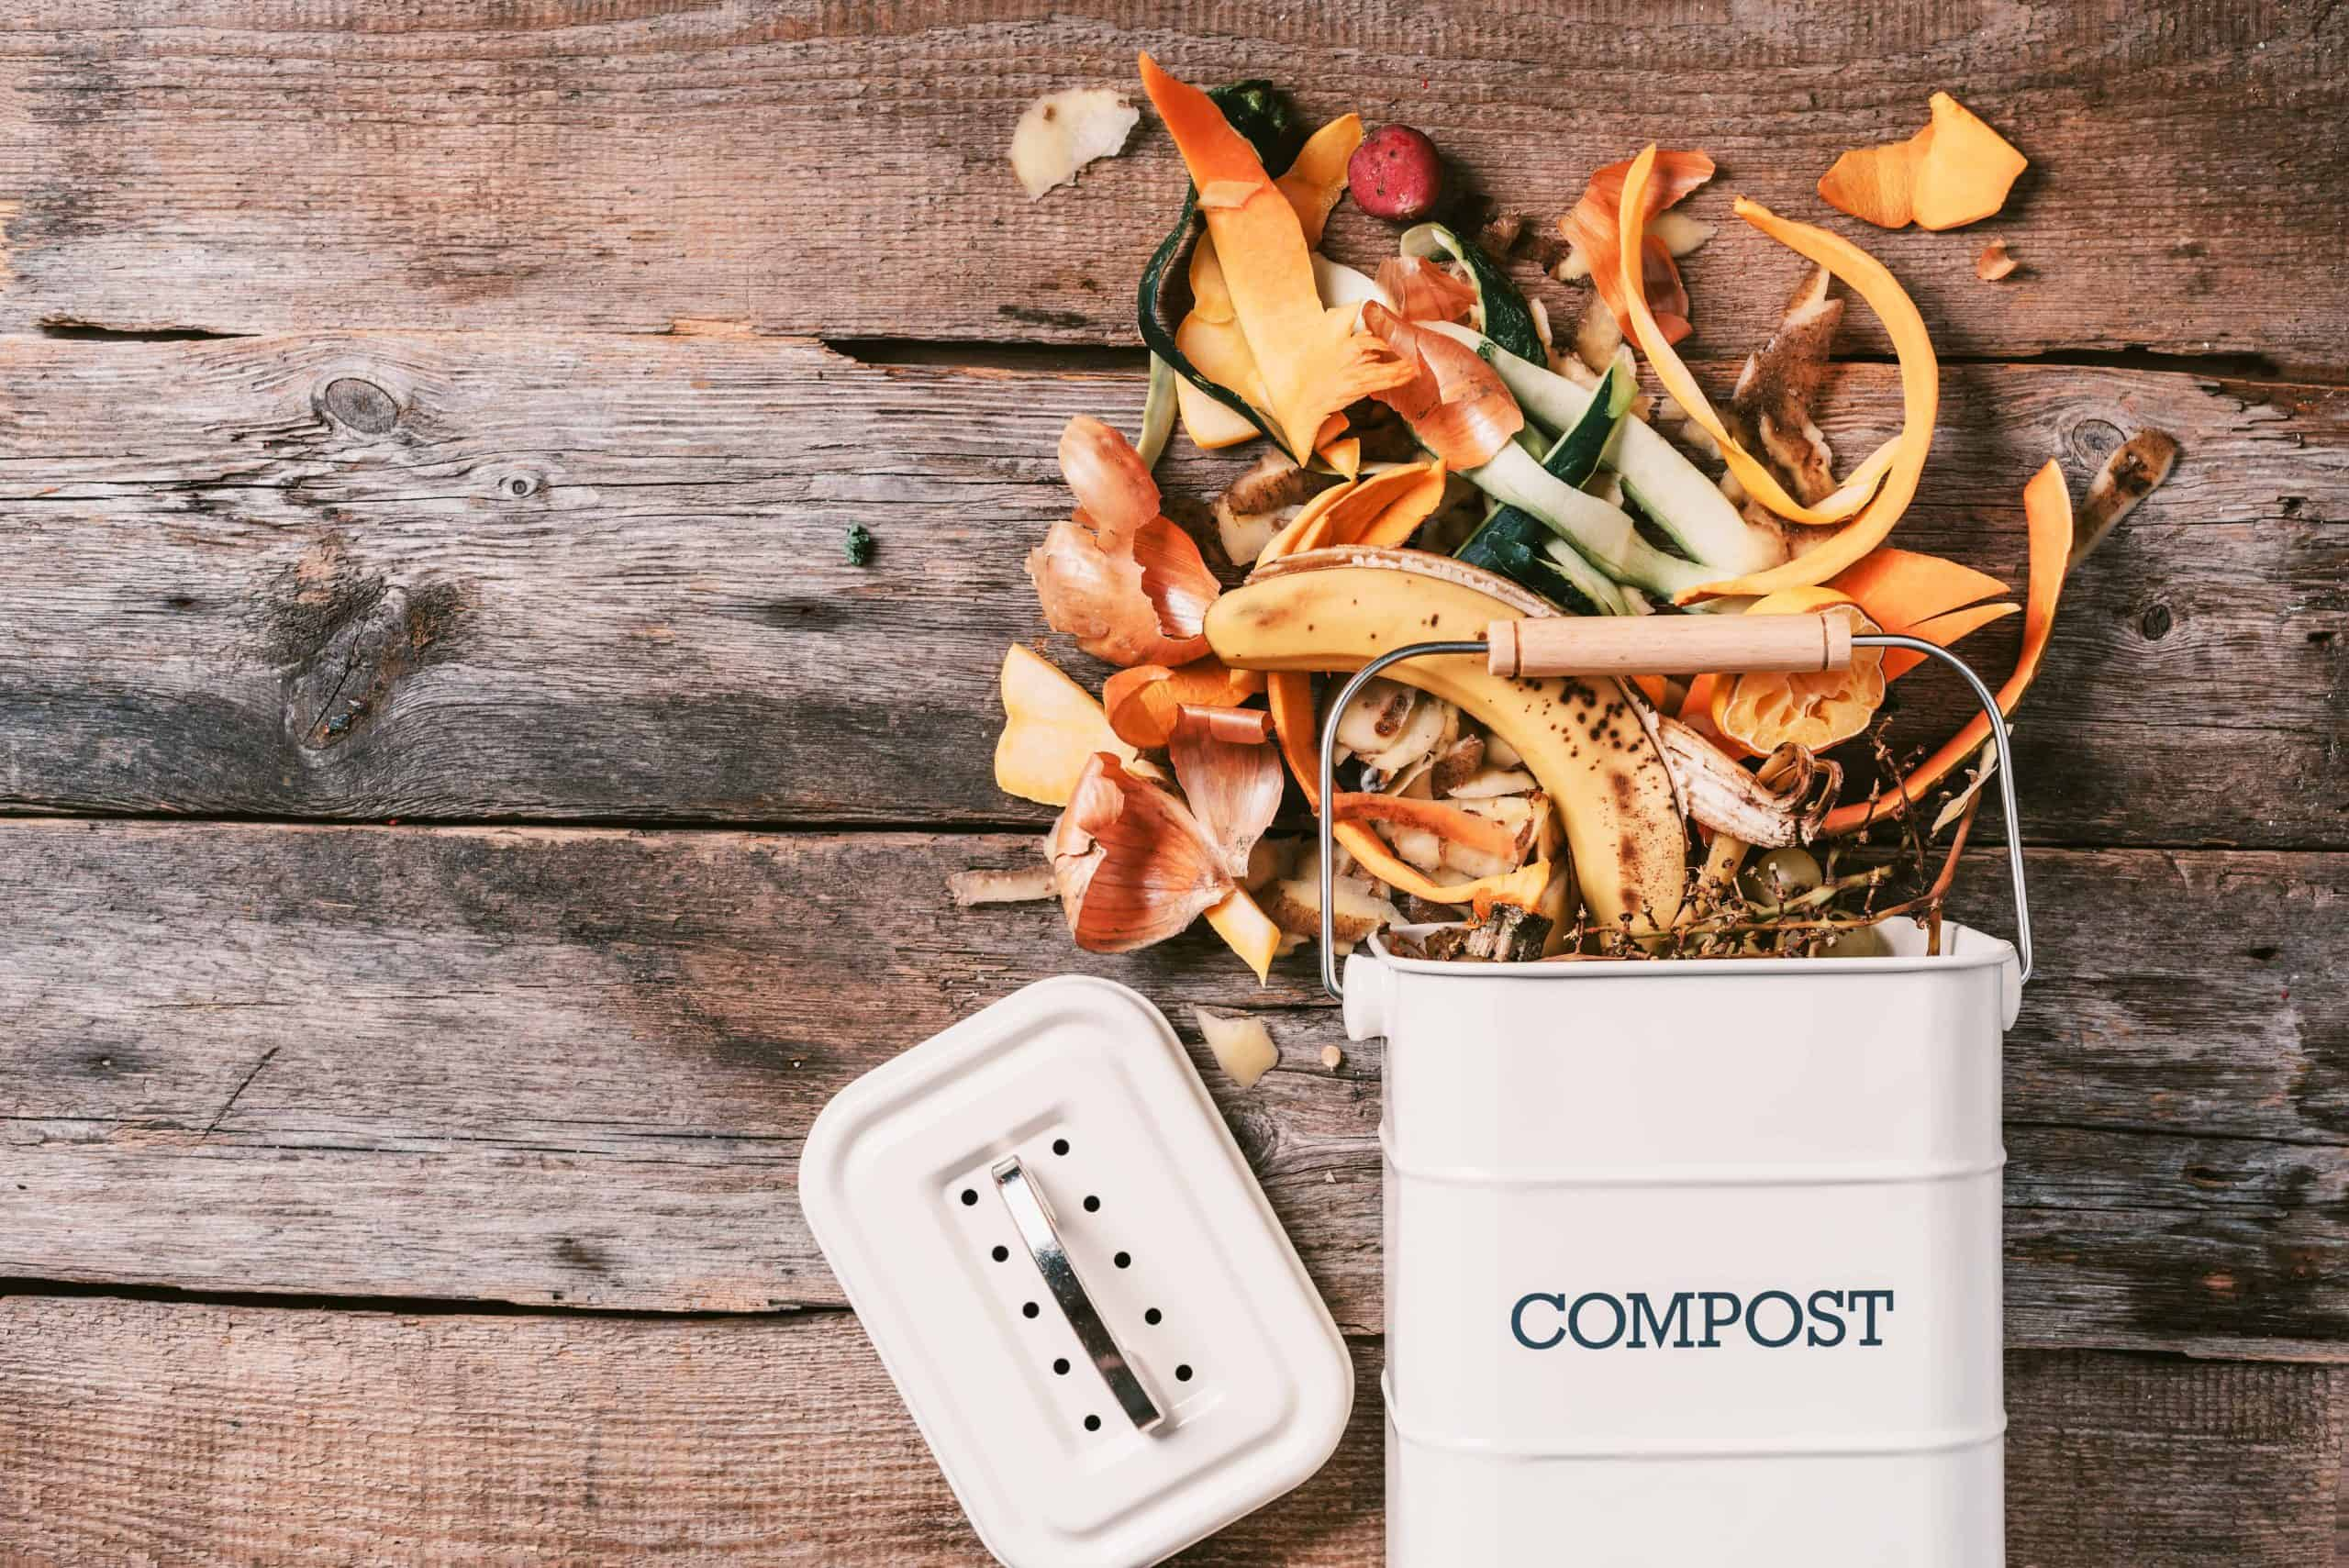 how to make compost hot by adding nitrogen